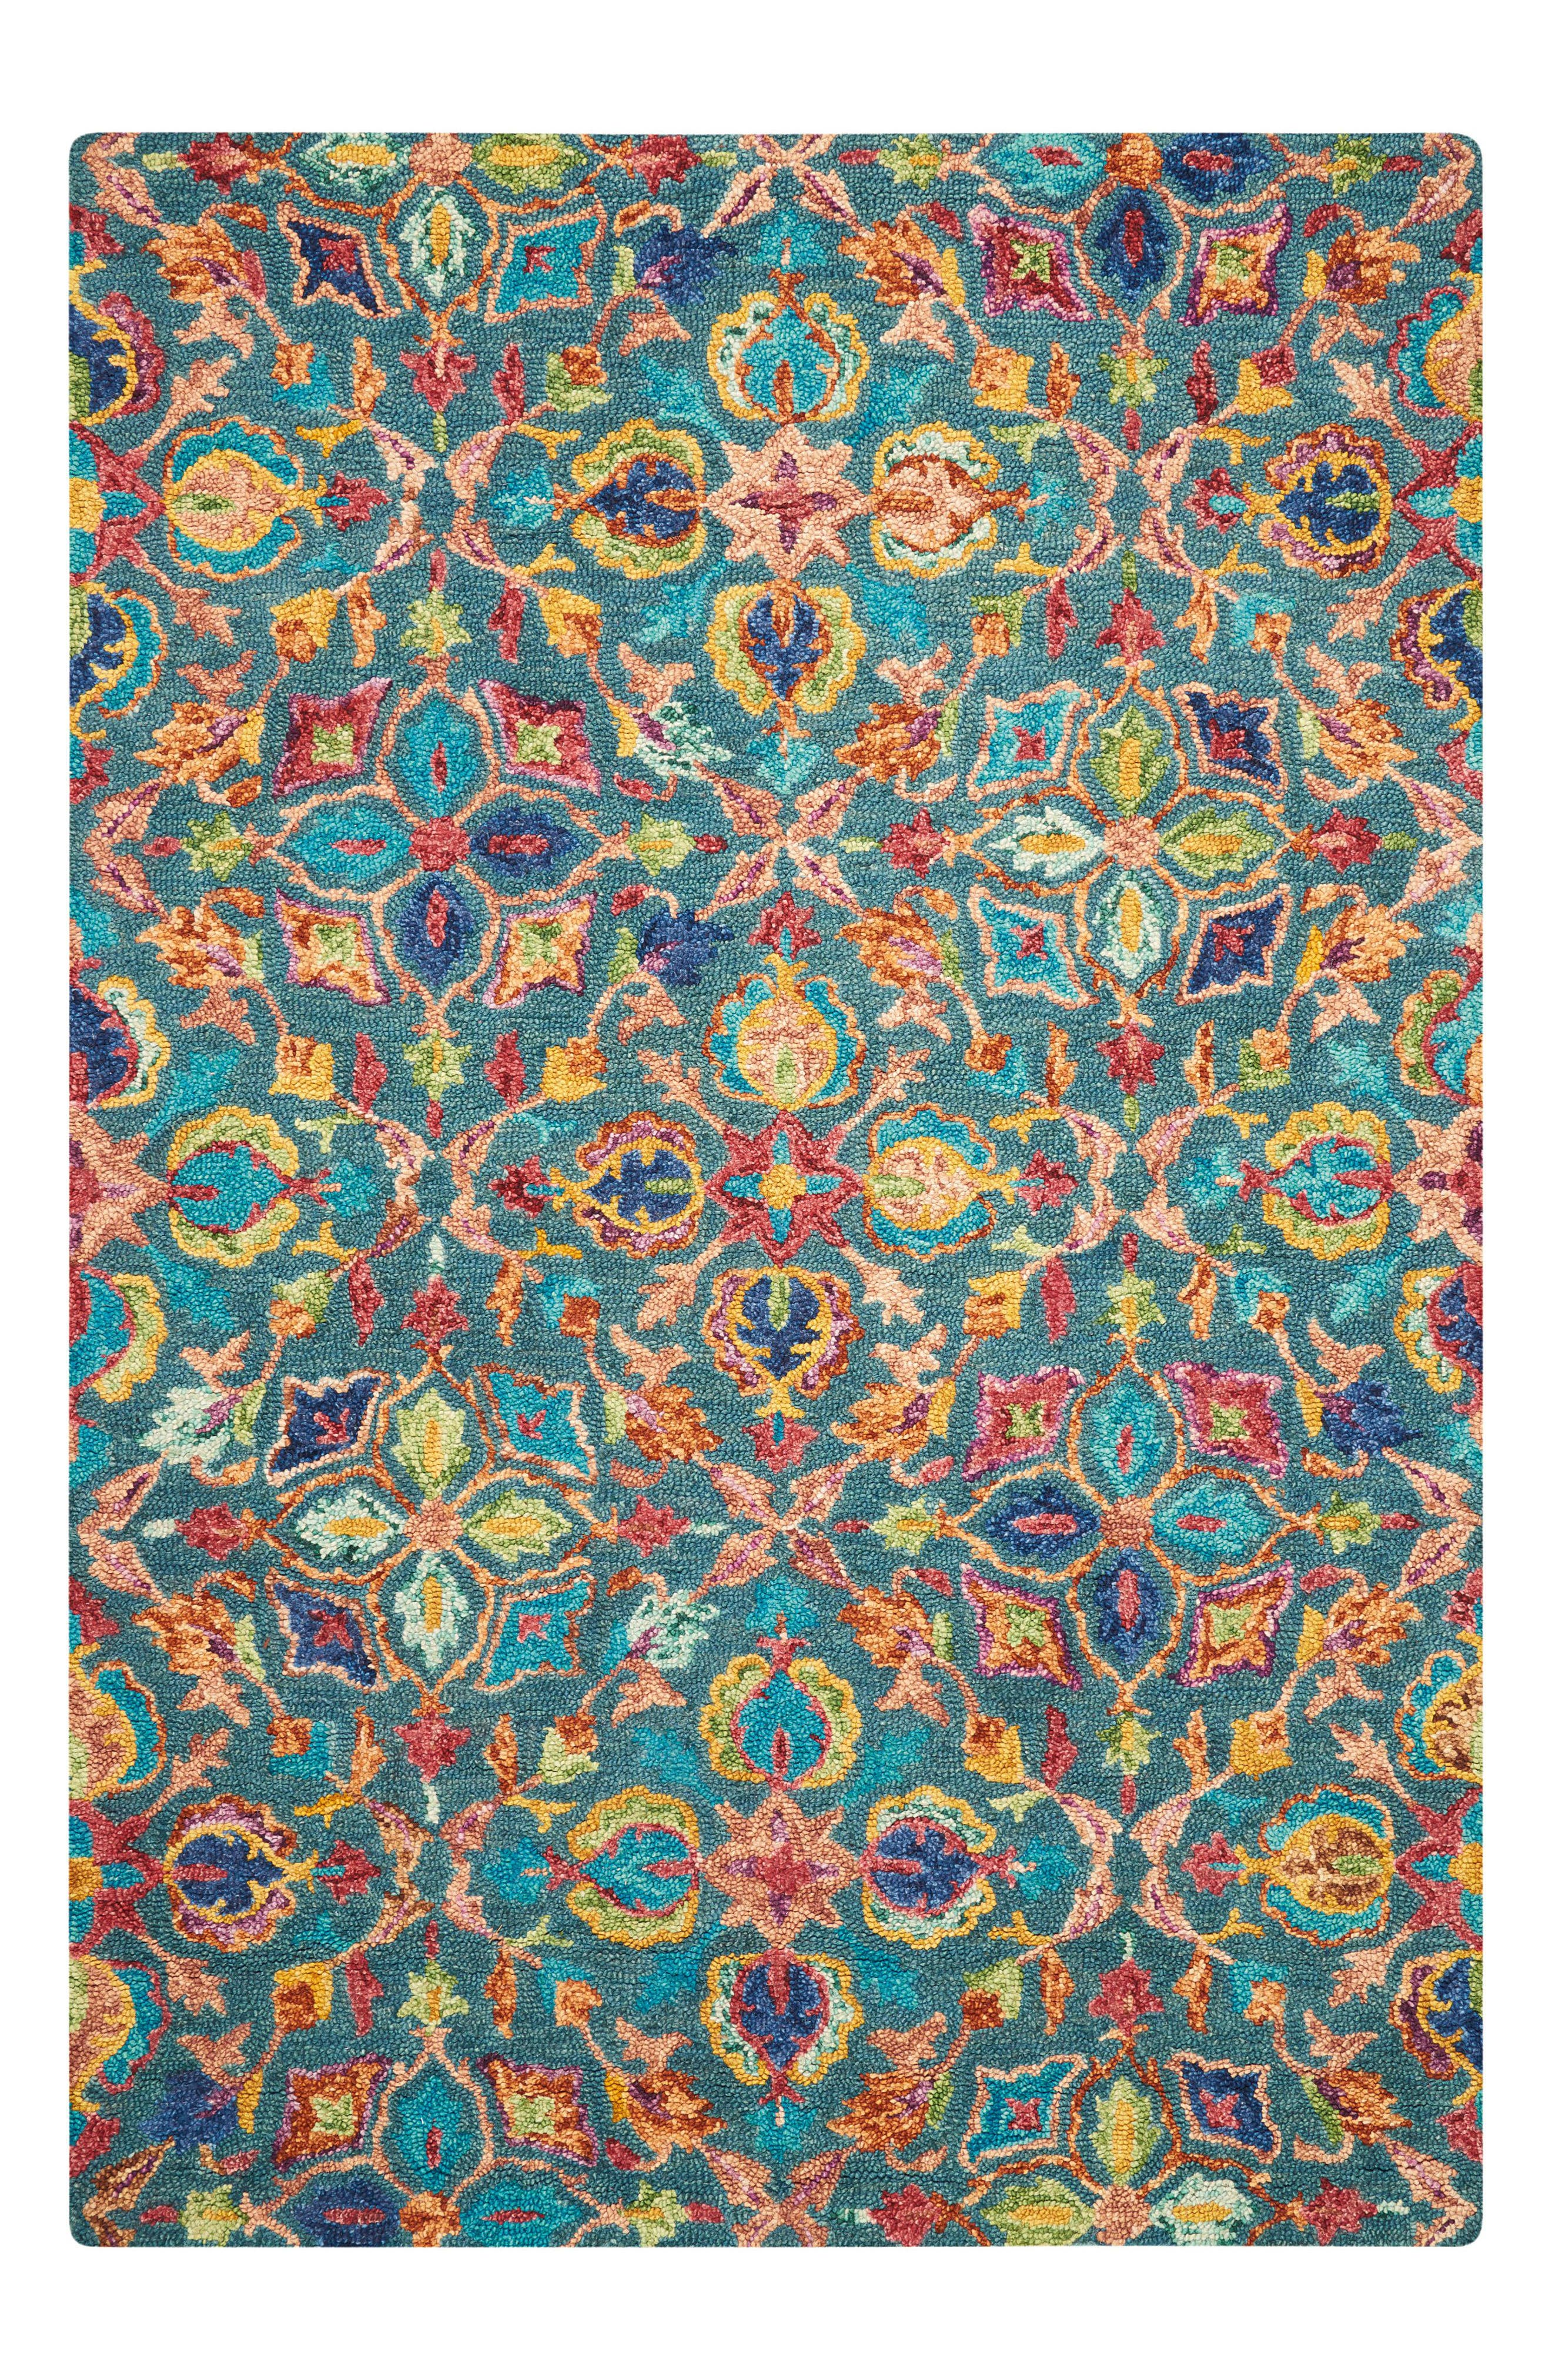 Vivid Wool Rug,                             Main thumbnail 1, color,                             400